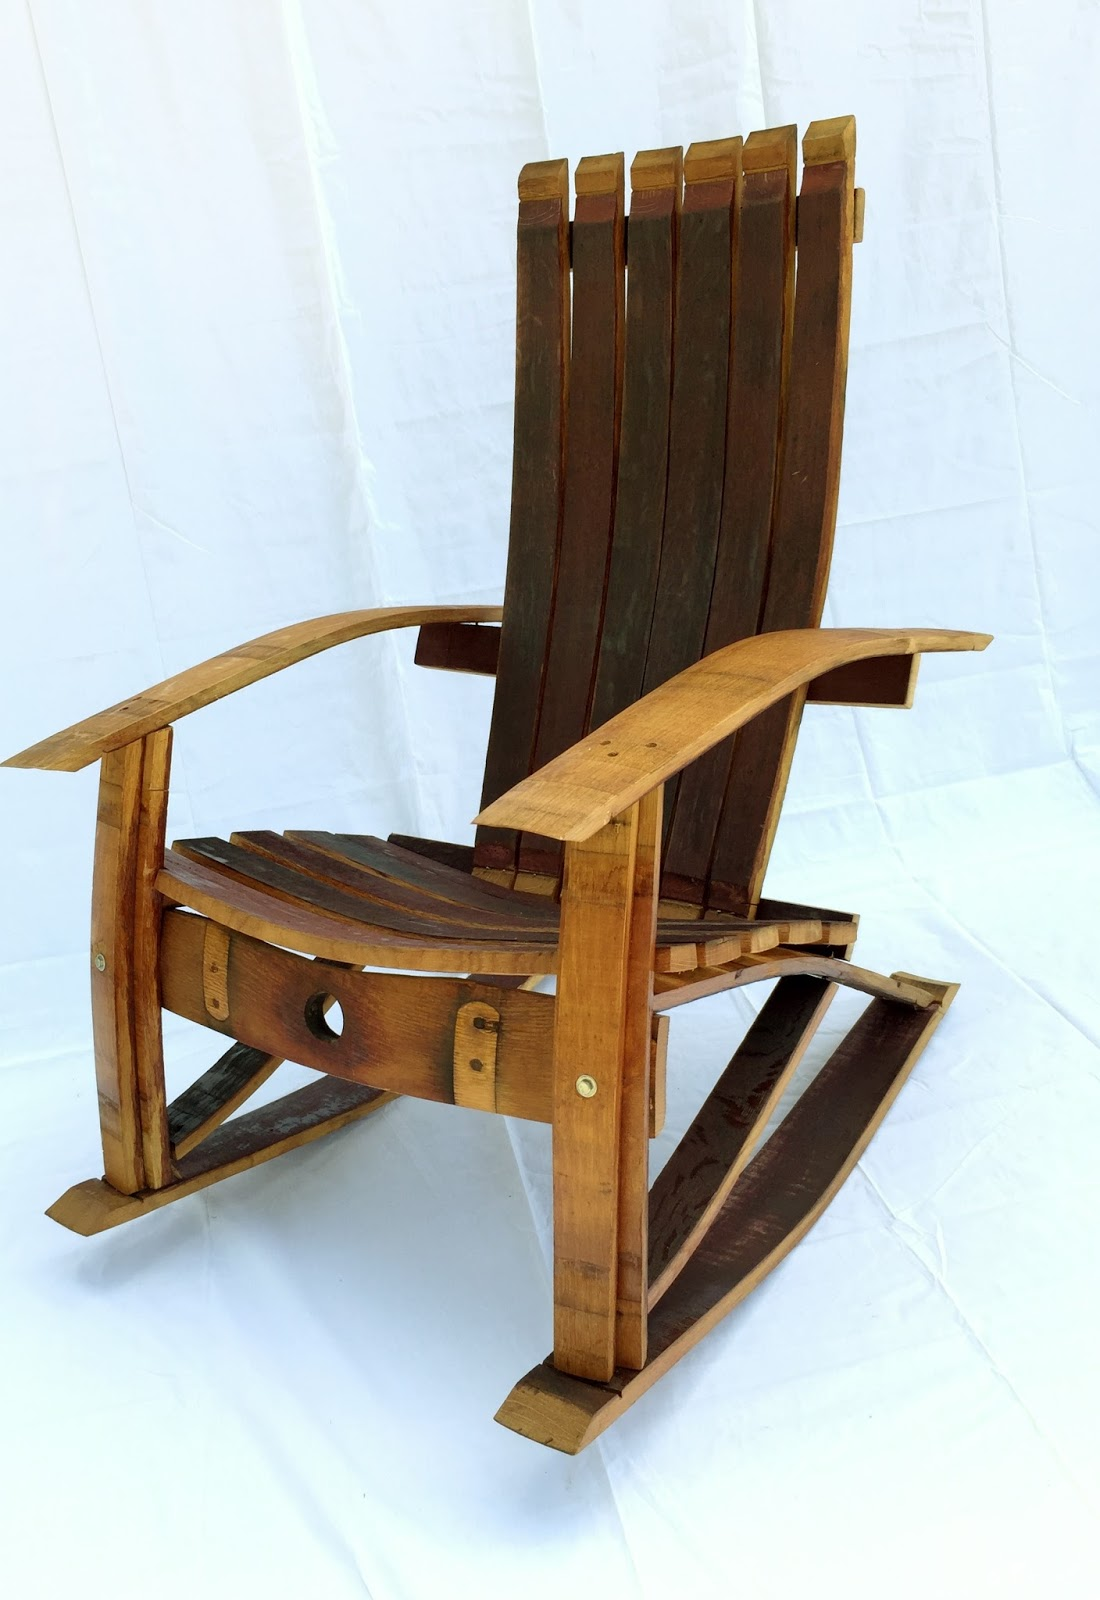 Barrel Stave Adirondack Chair Plans Mesh Gaming Woodworking News With Award Winning Projects